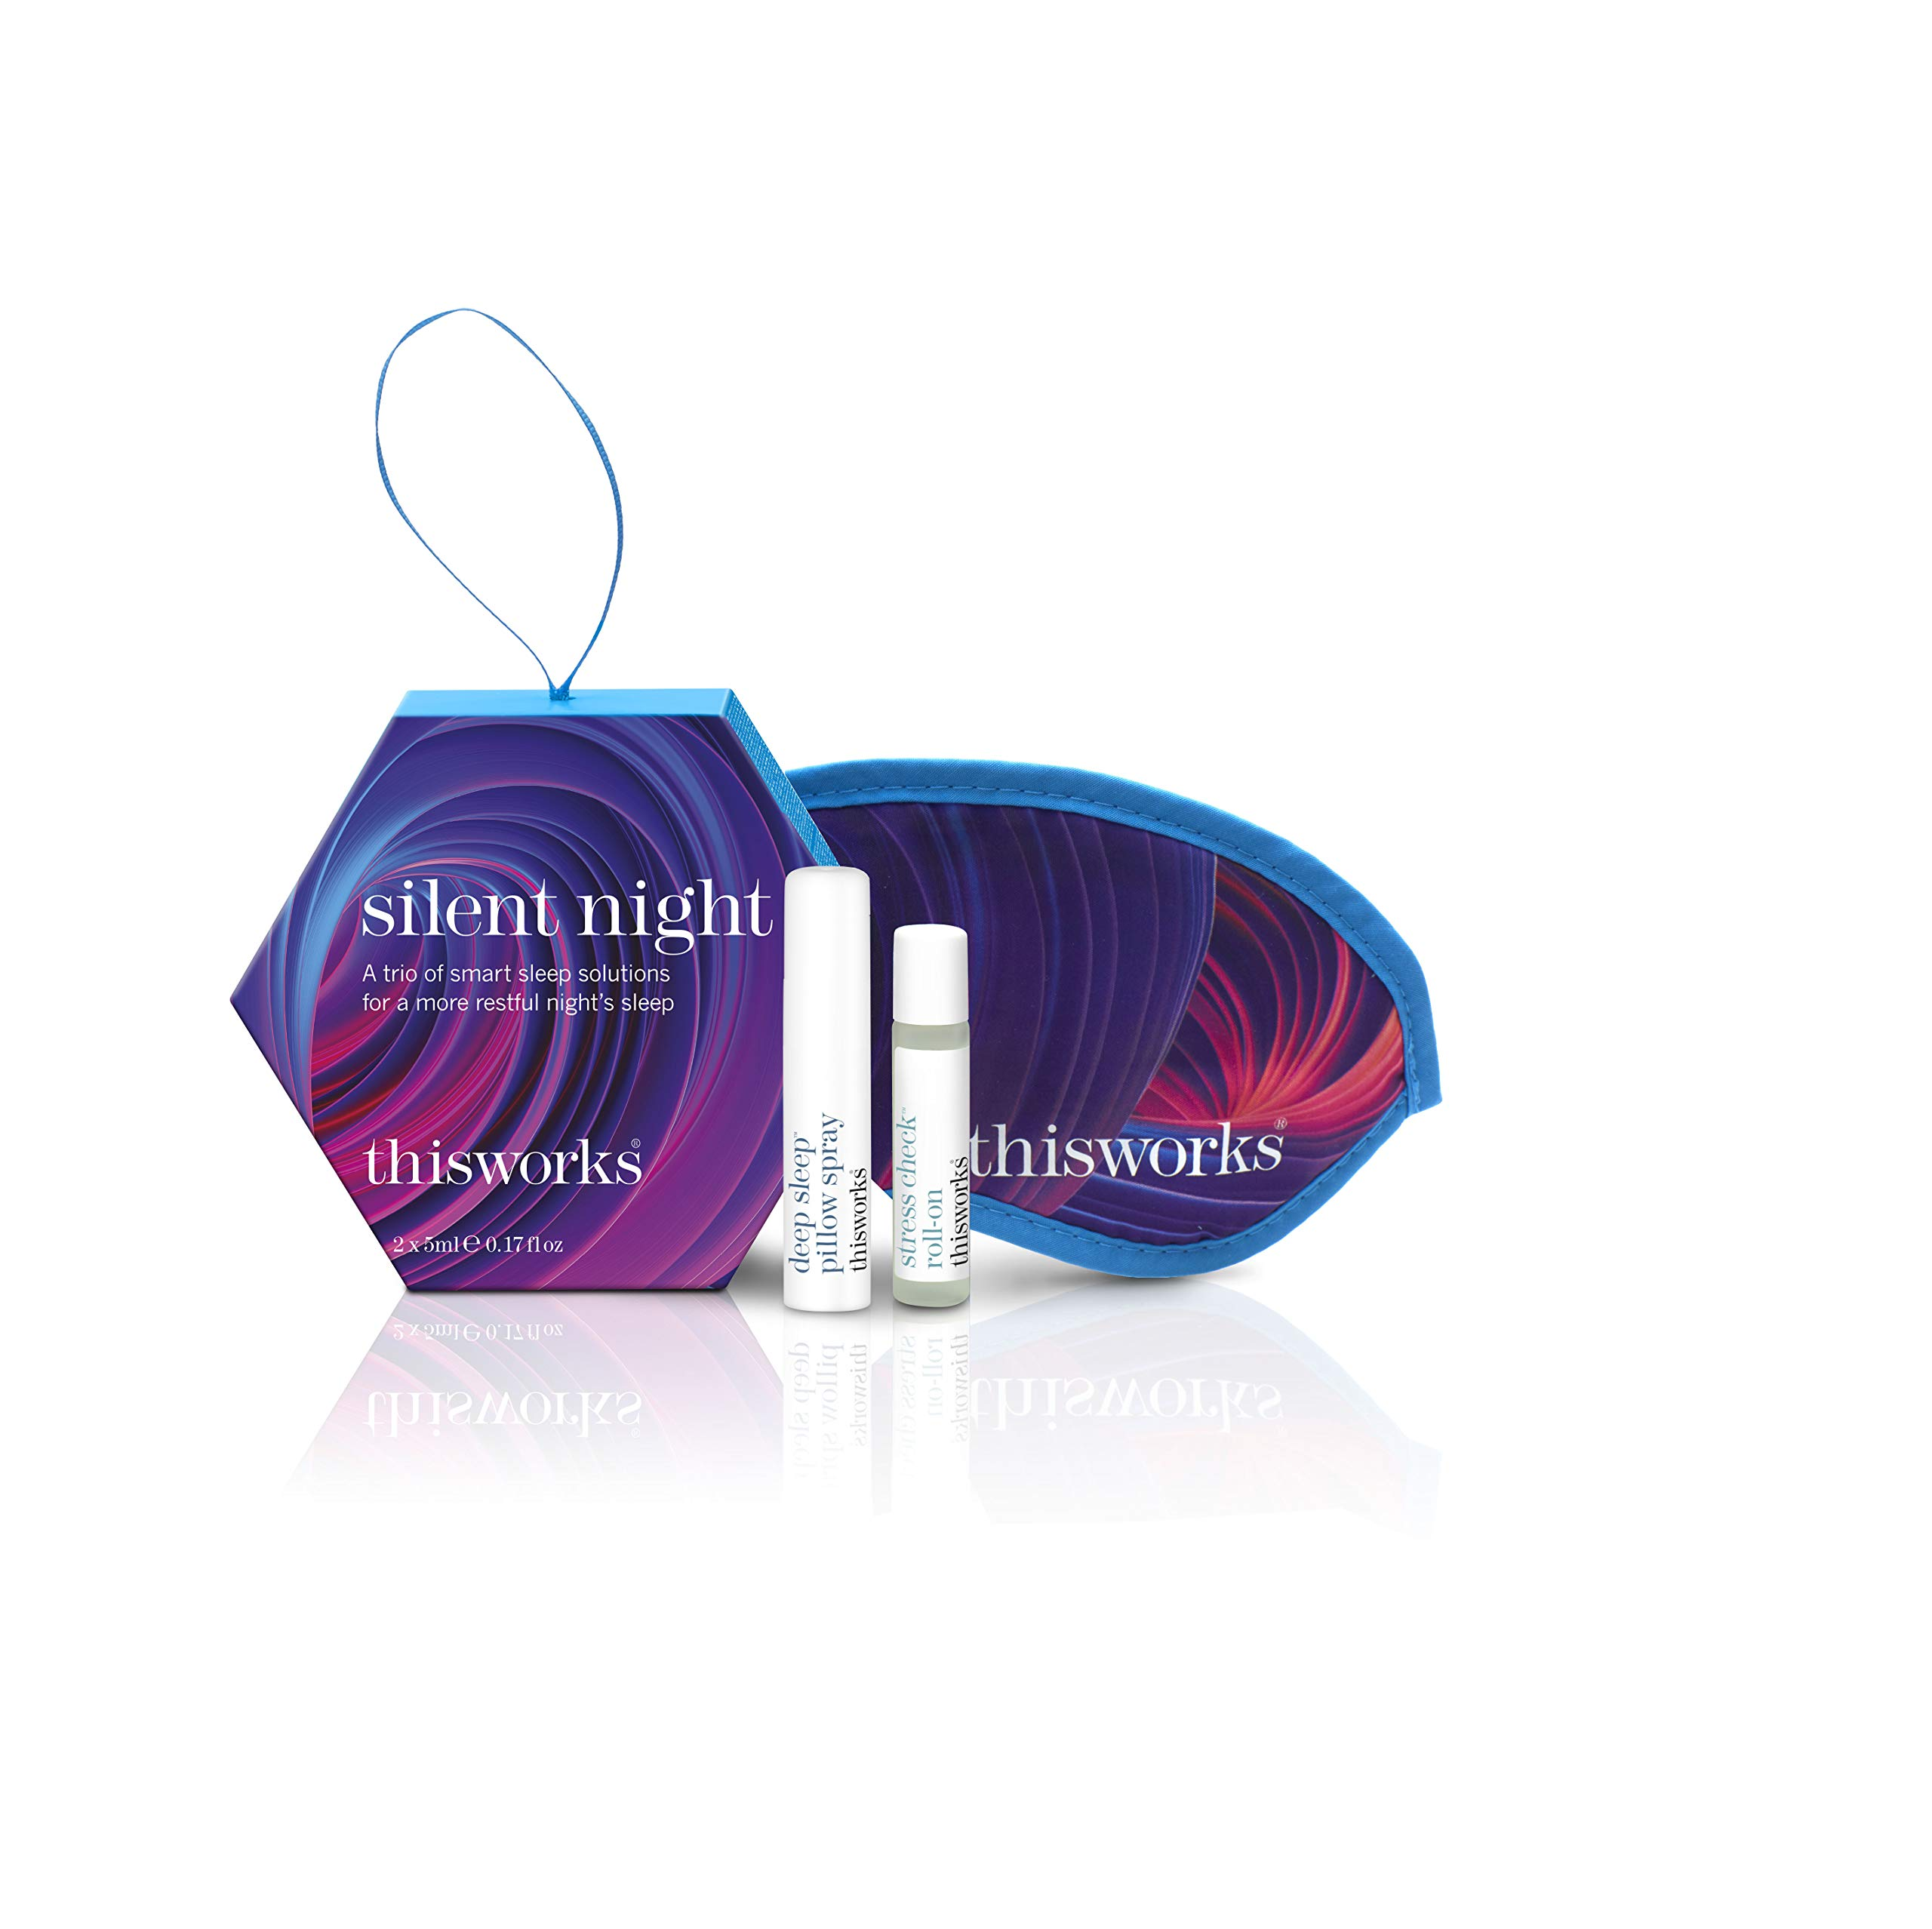 This Works Limited Edition Silent Night Gift Set